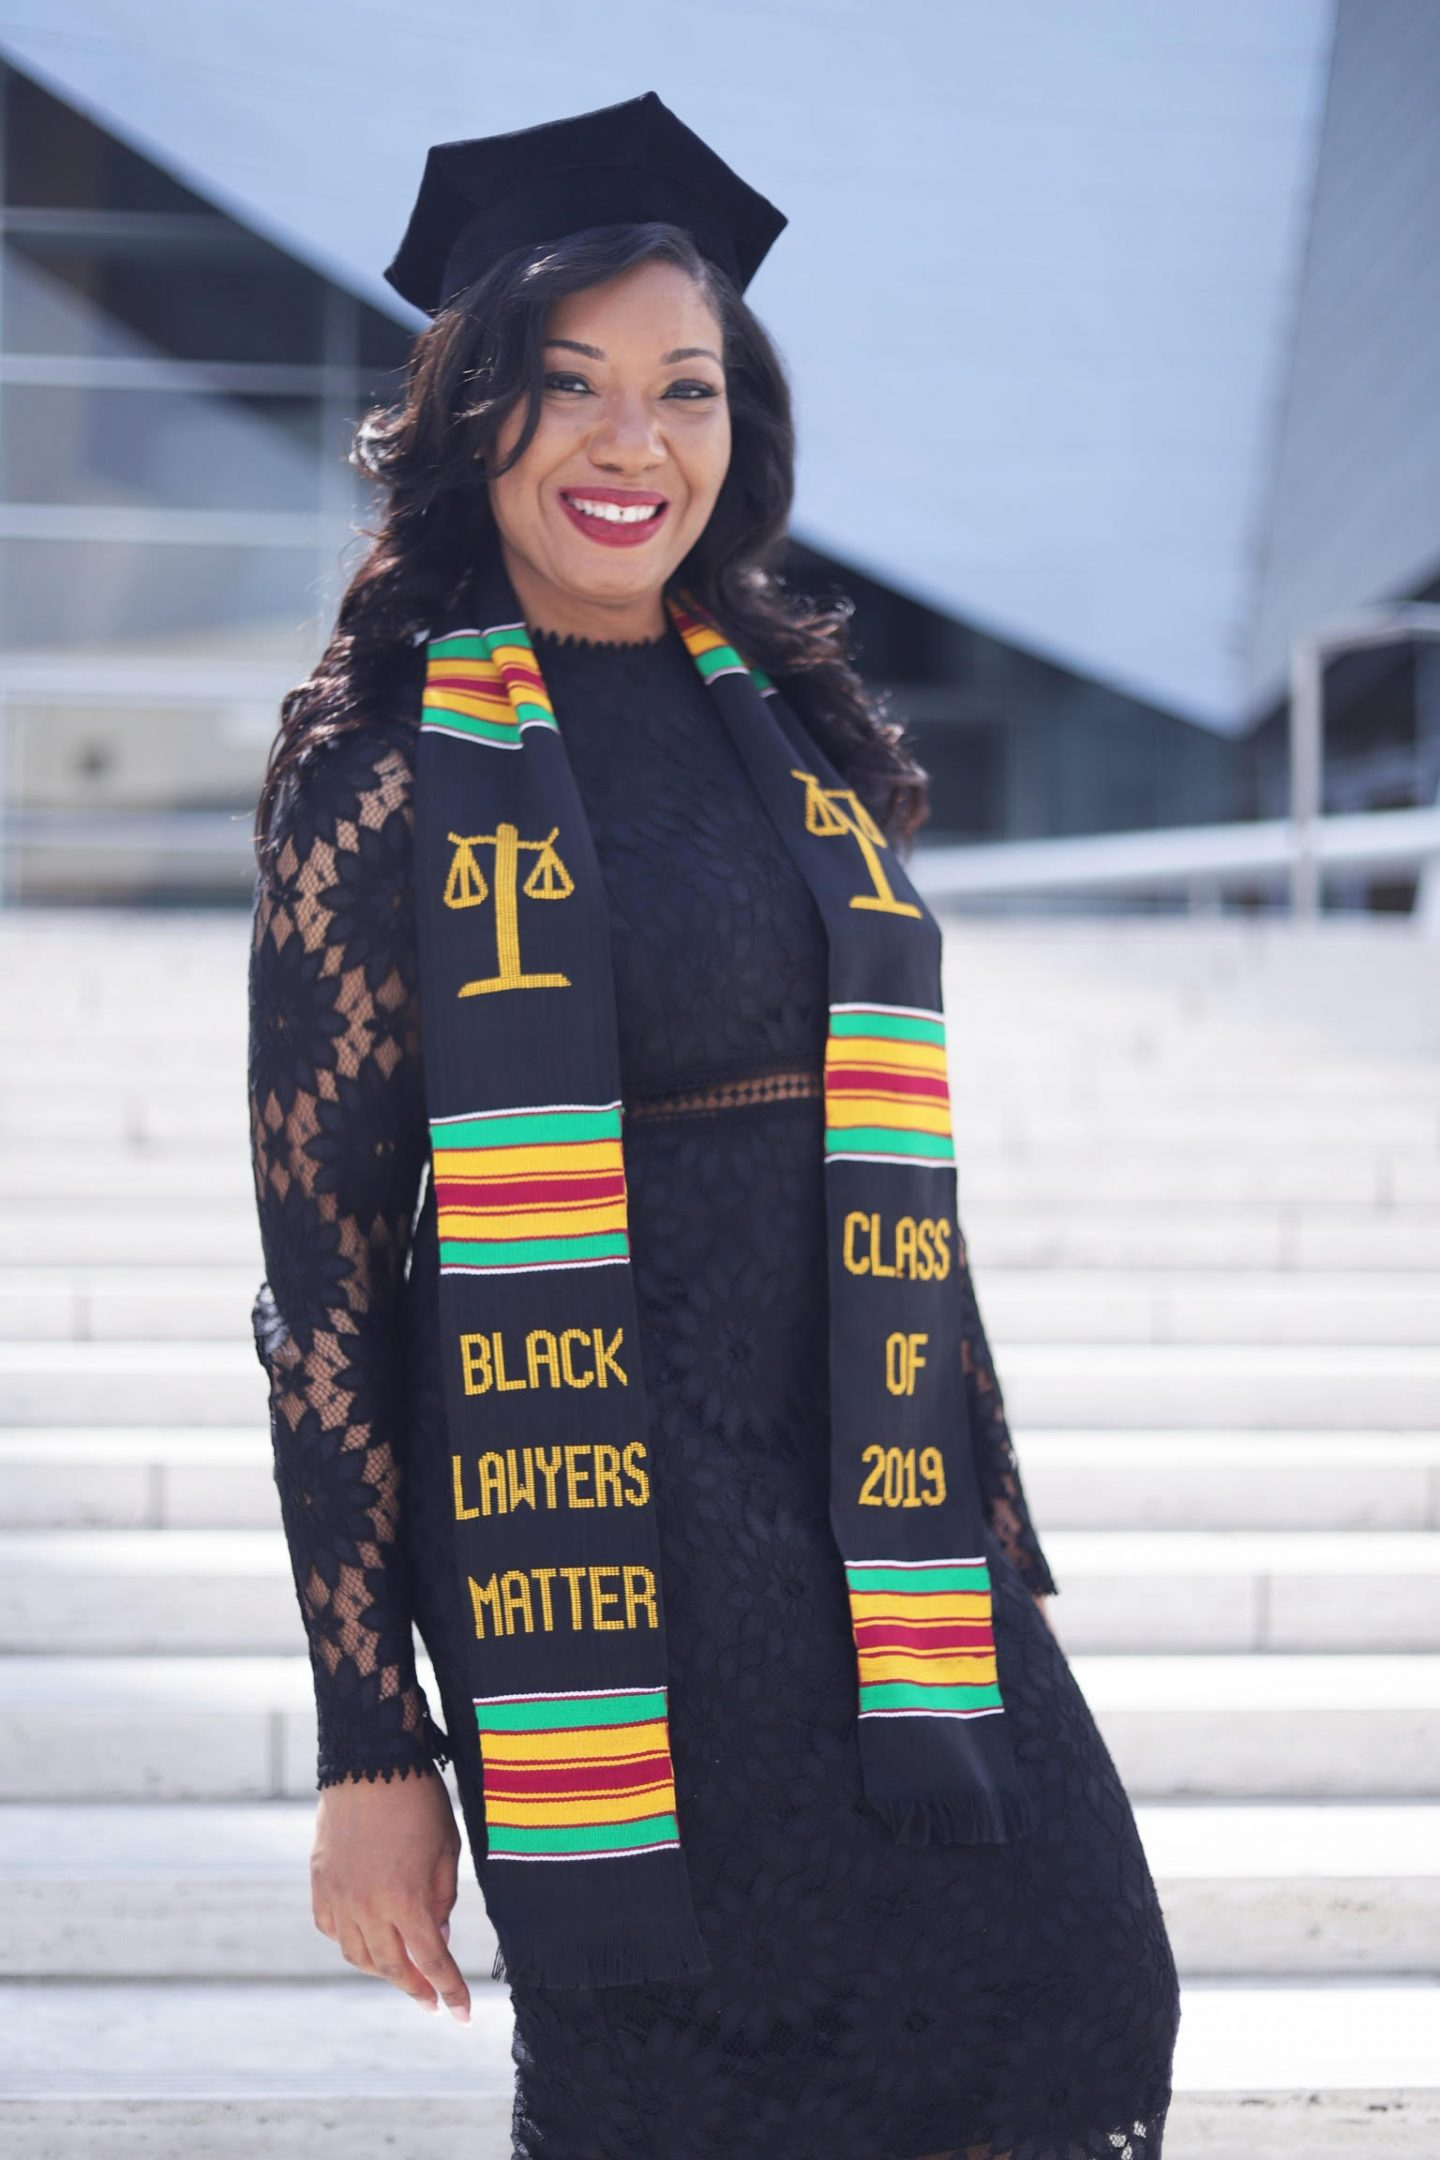 MEET GRADUATE JANAE HILL